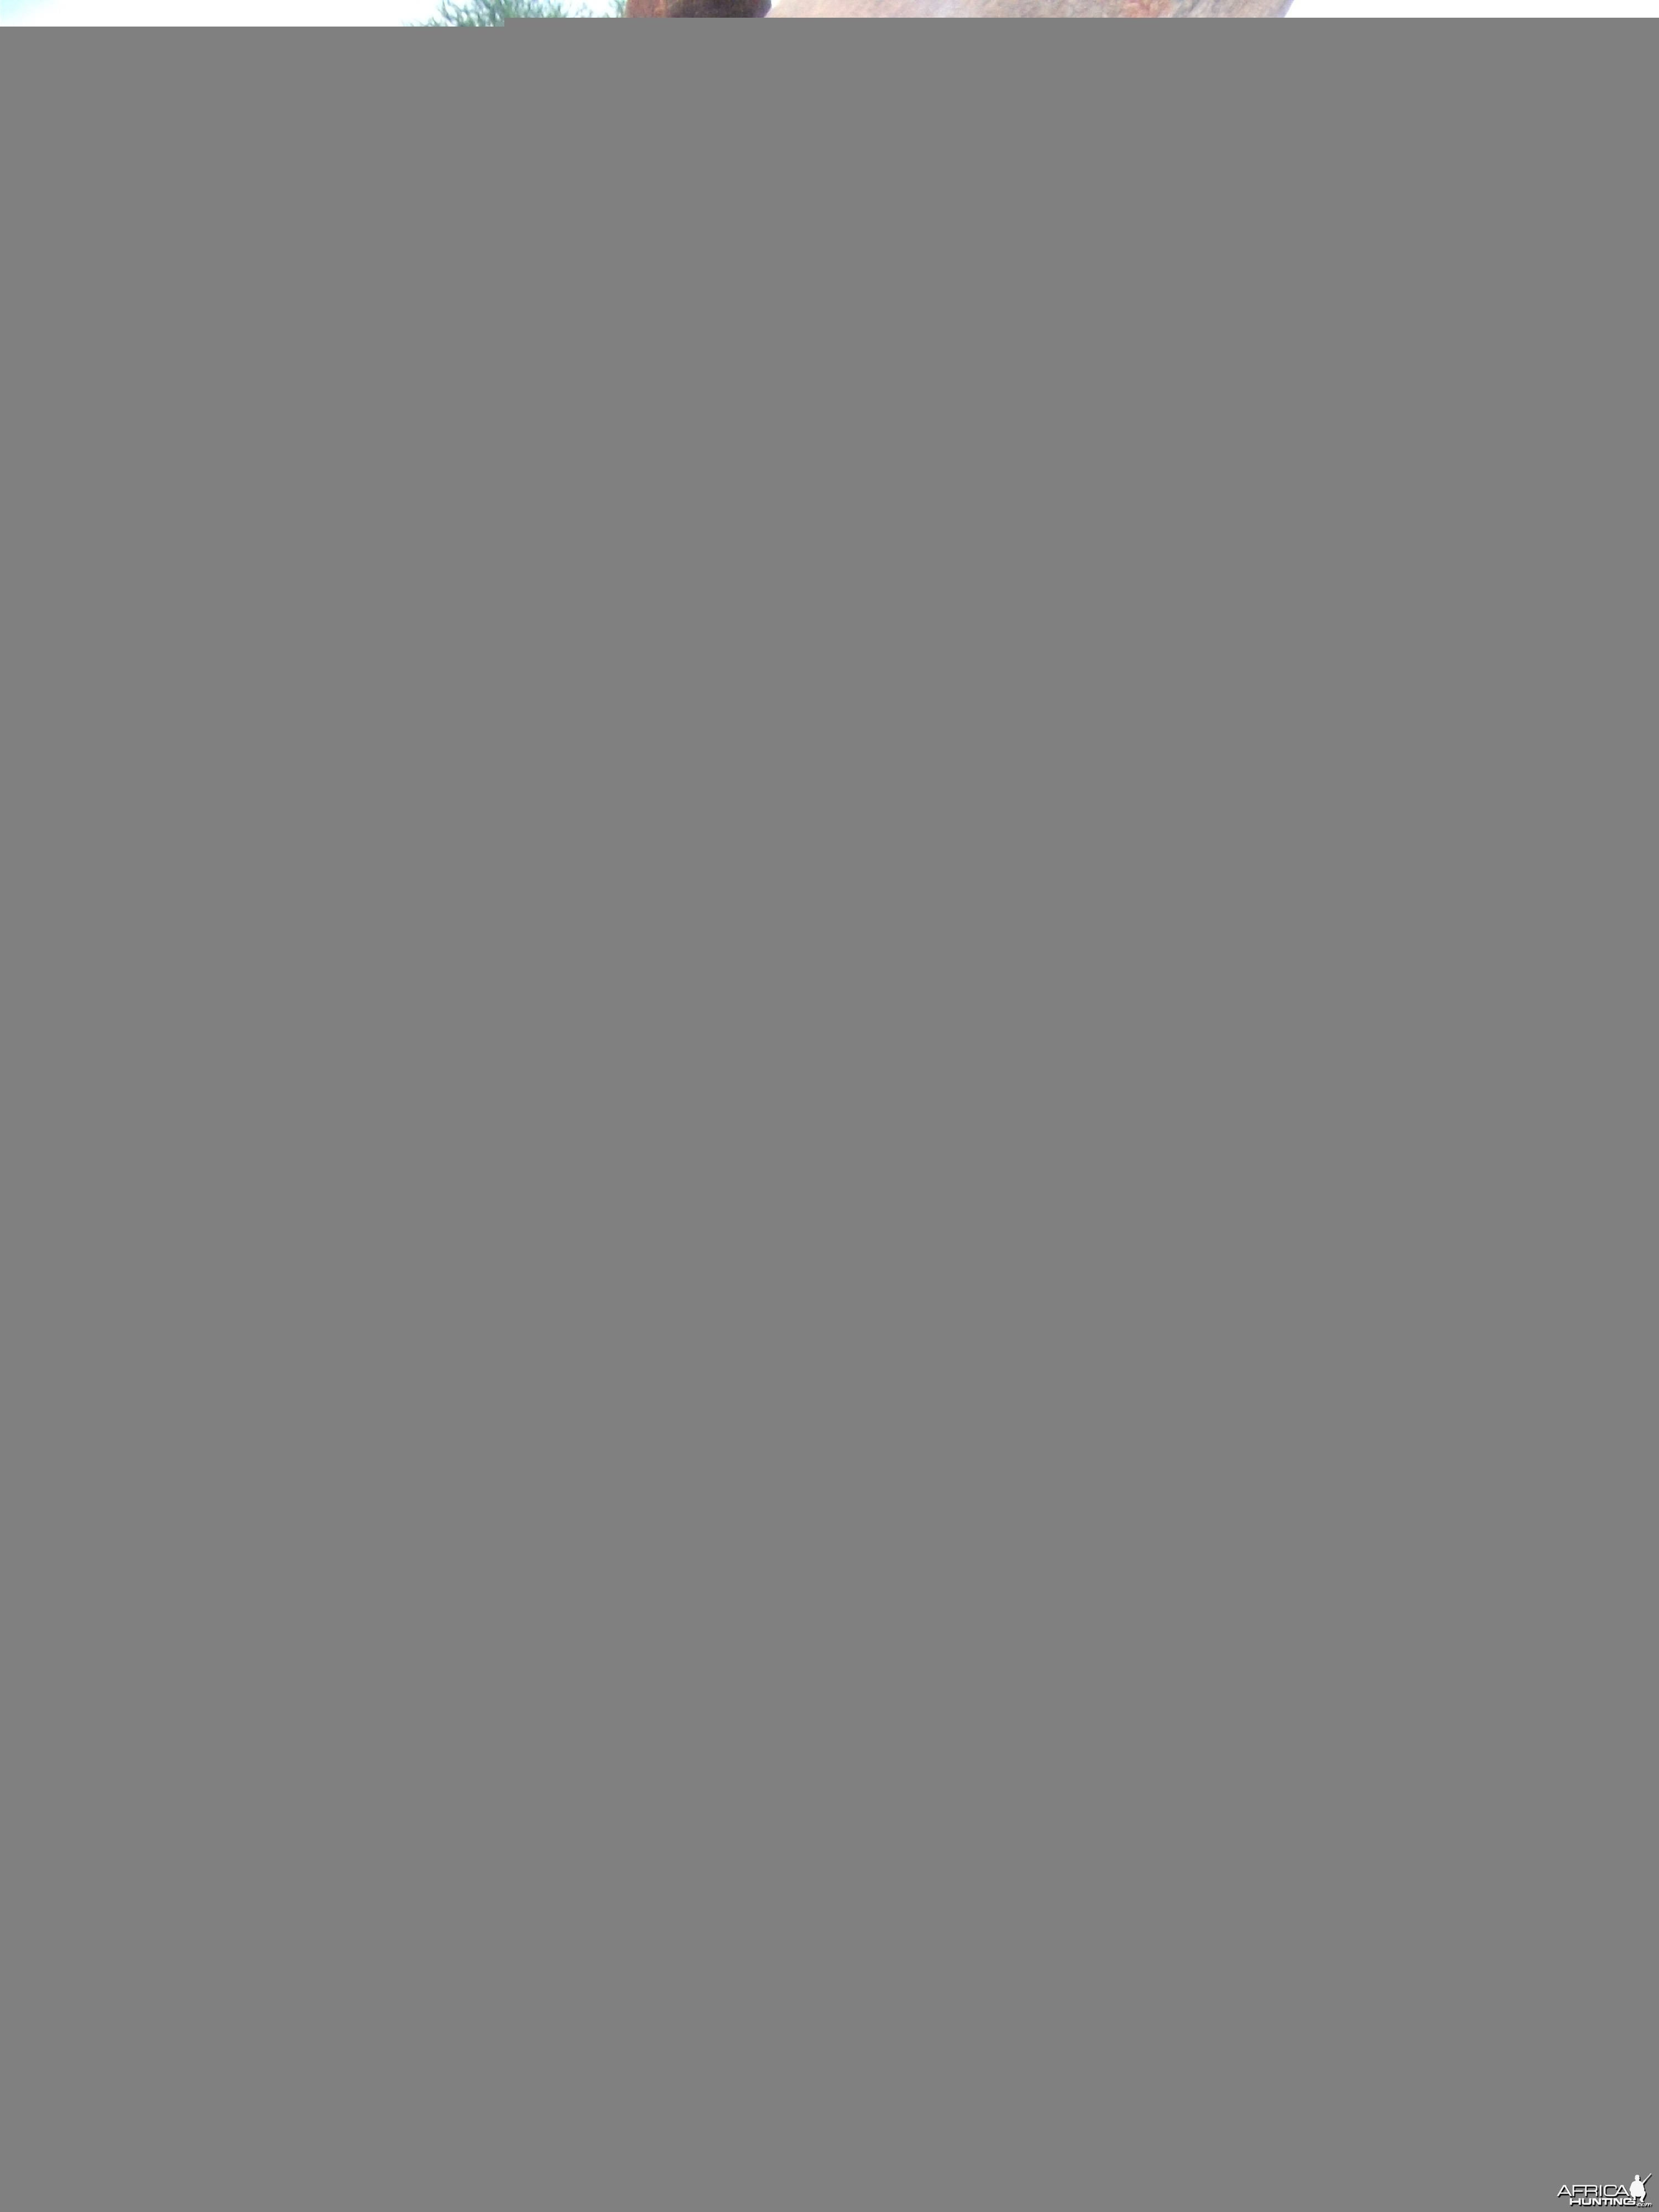 Three horned Greater Kudu hunted in Namibia